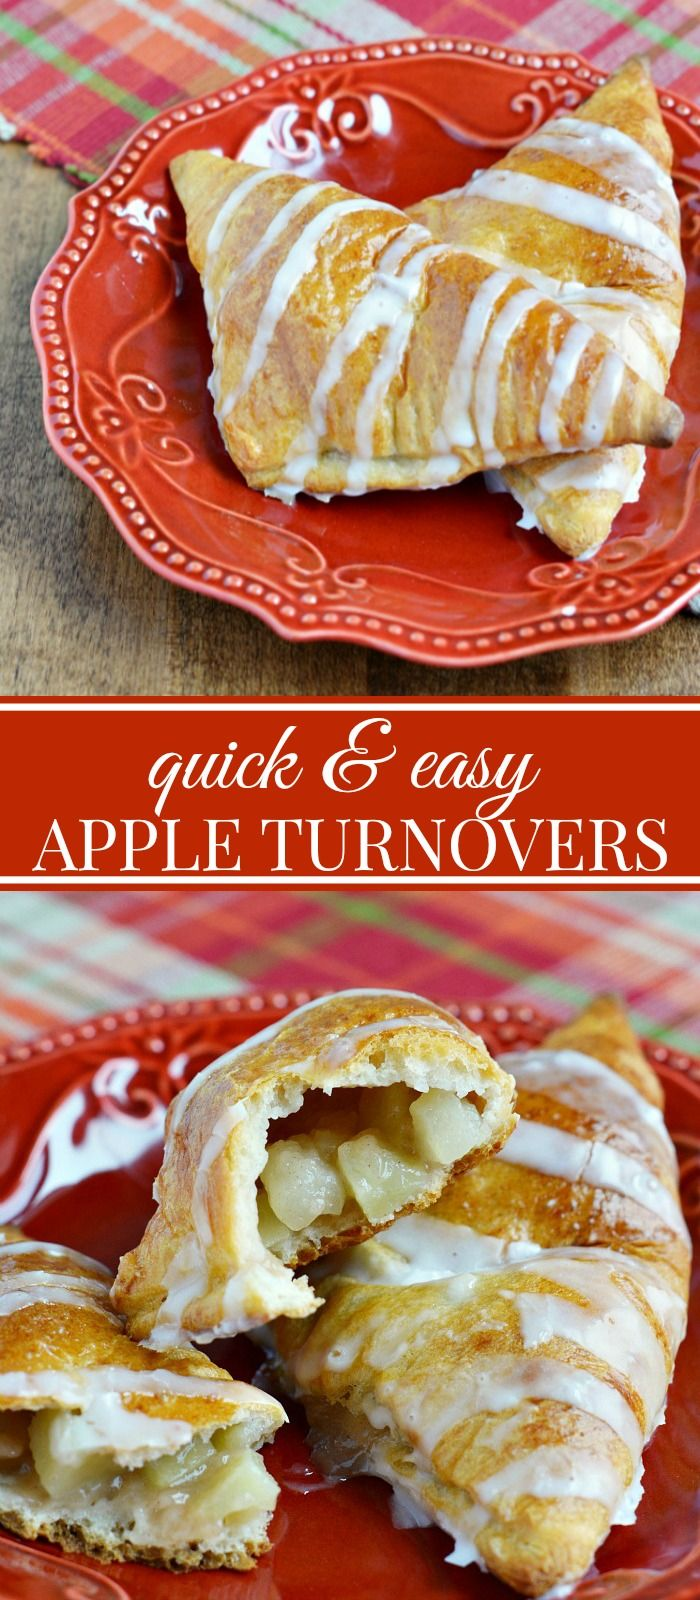 Easy Apple Turnovers - Super simple to make right at home.